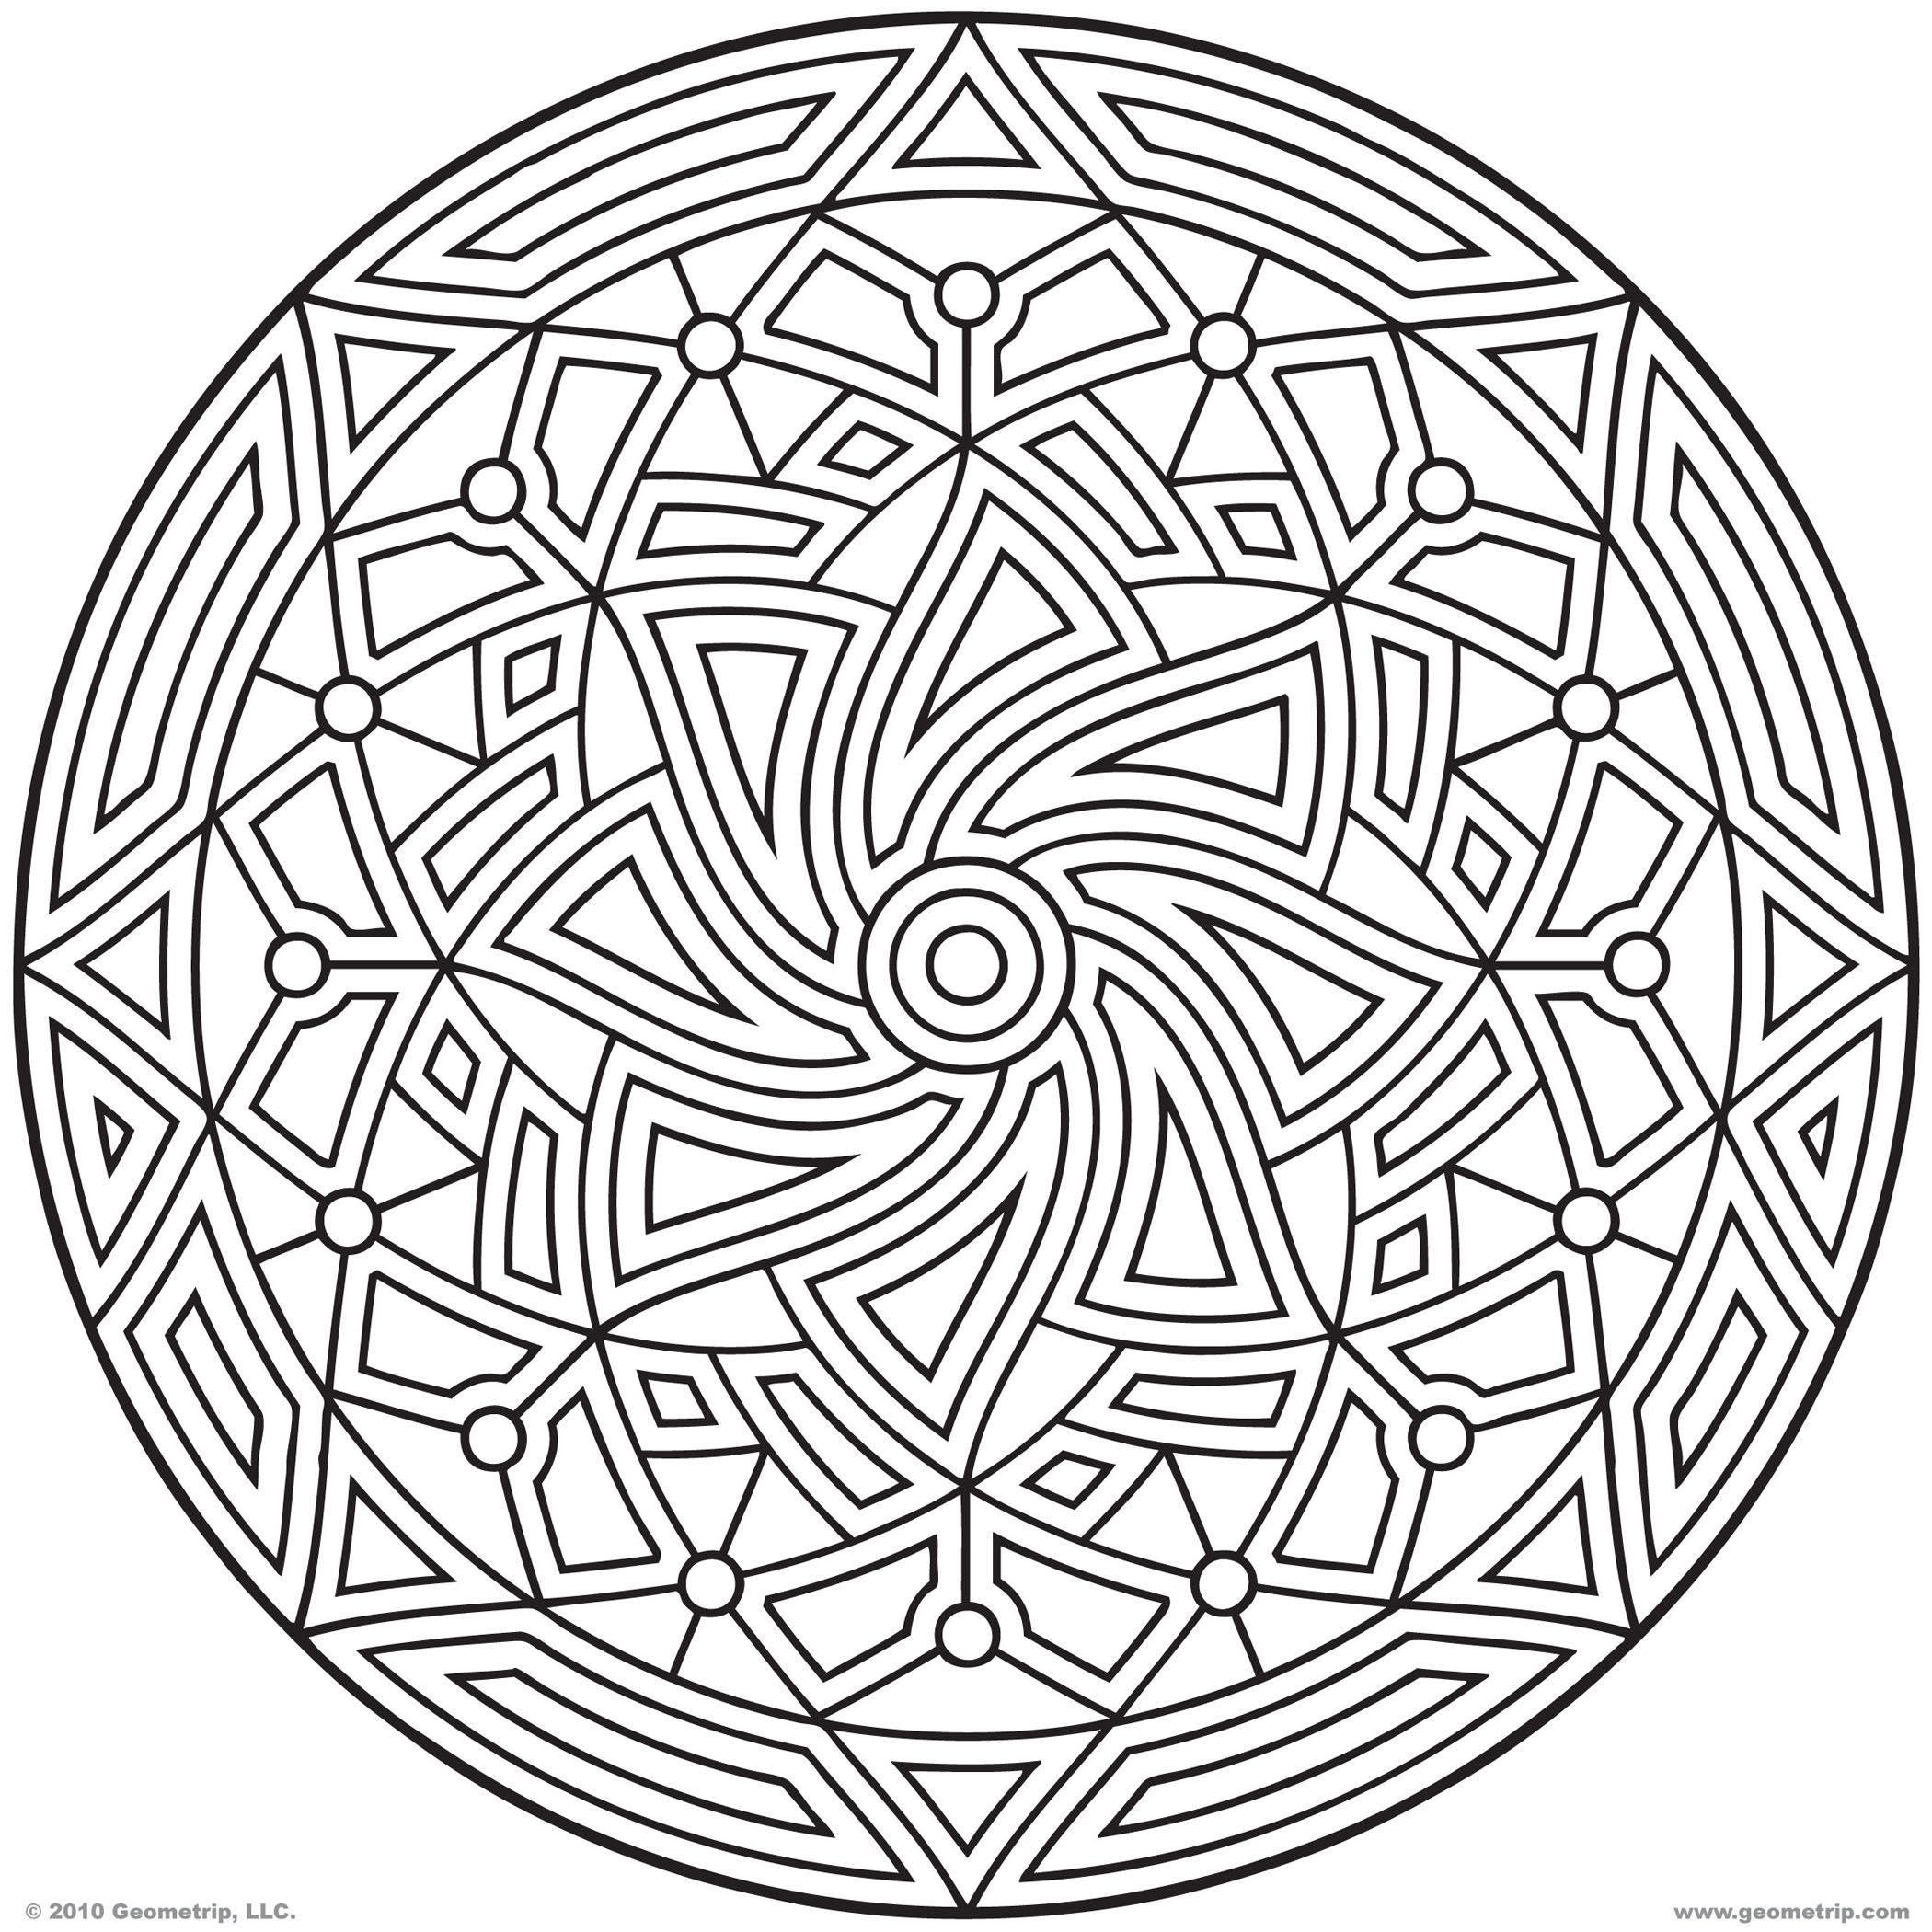 Clip Art Circles Coloring Pages circles coloring page az pages 3d circle printable for all ages